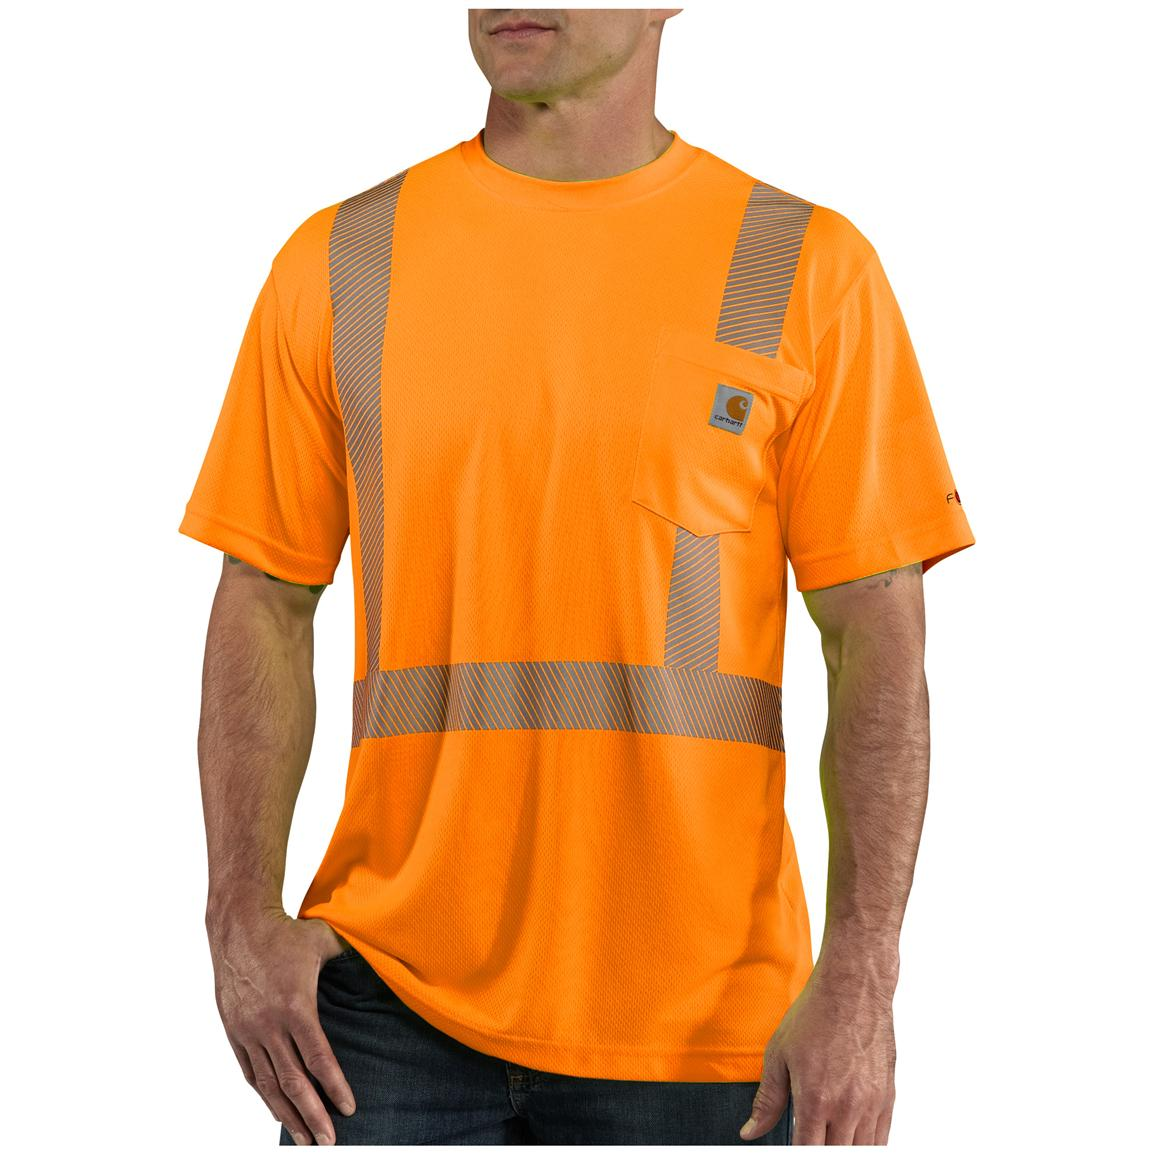 Men's Carhartt® Force™ Class 2 High-visibility T-shirt, Brite Orange